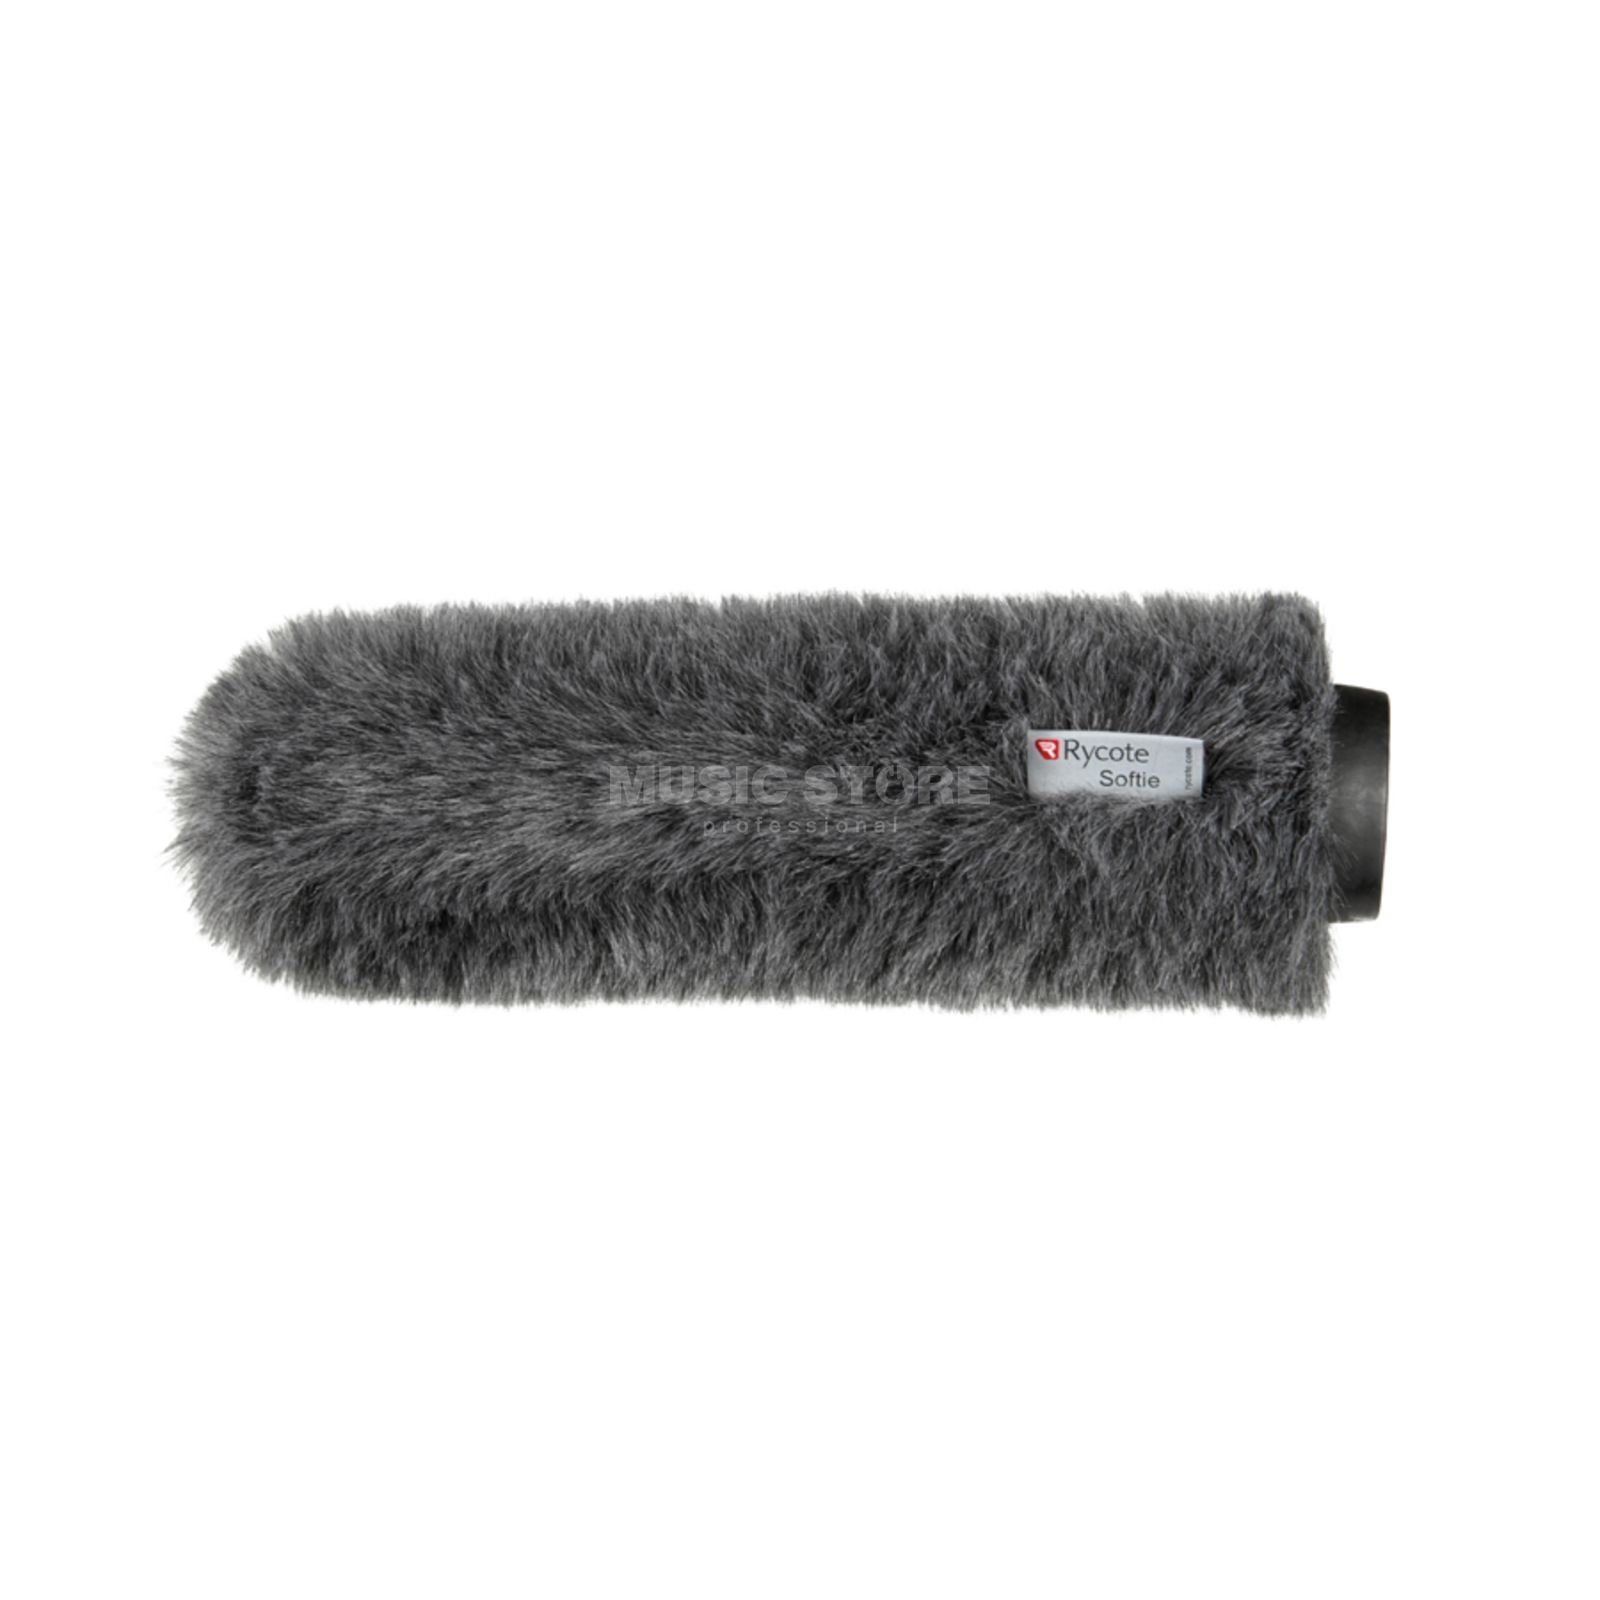 Rycote Classic Softie 29 cm fit 19/22mm Diameter Produktbild